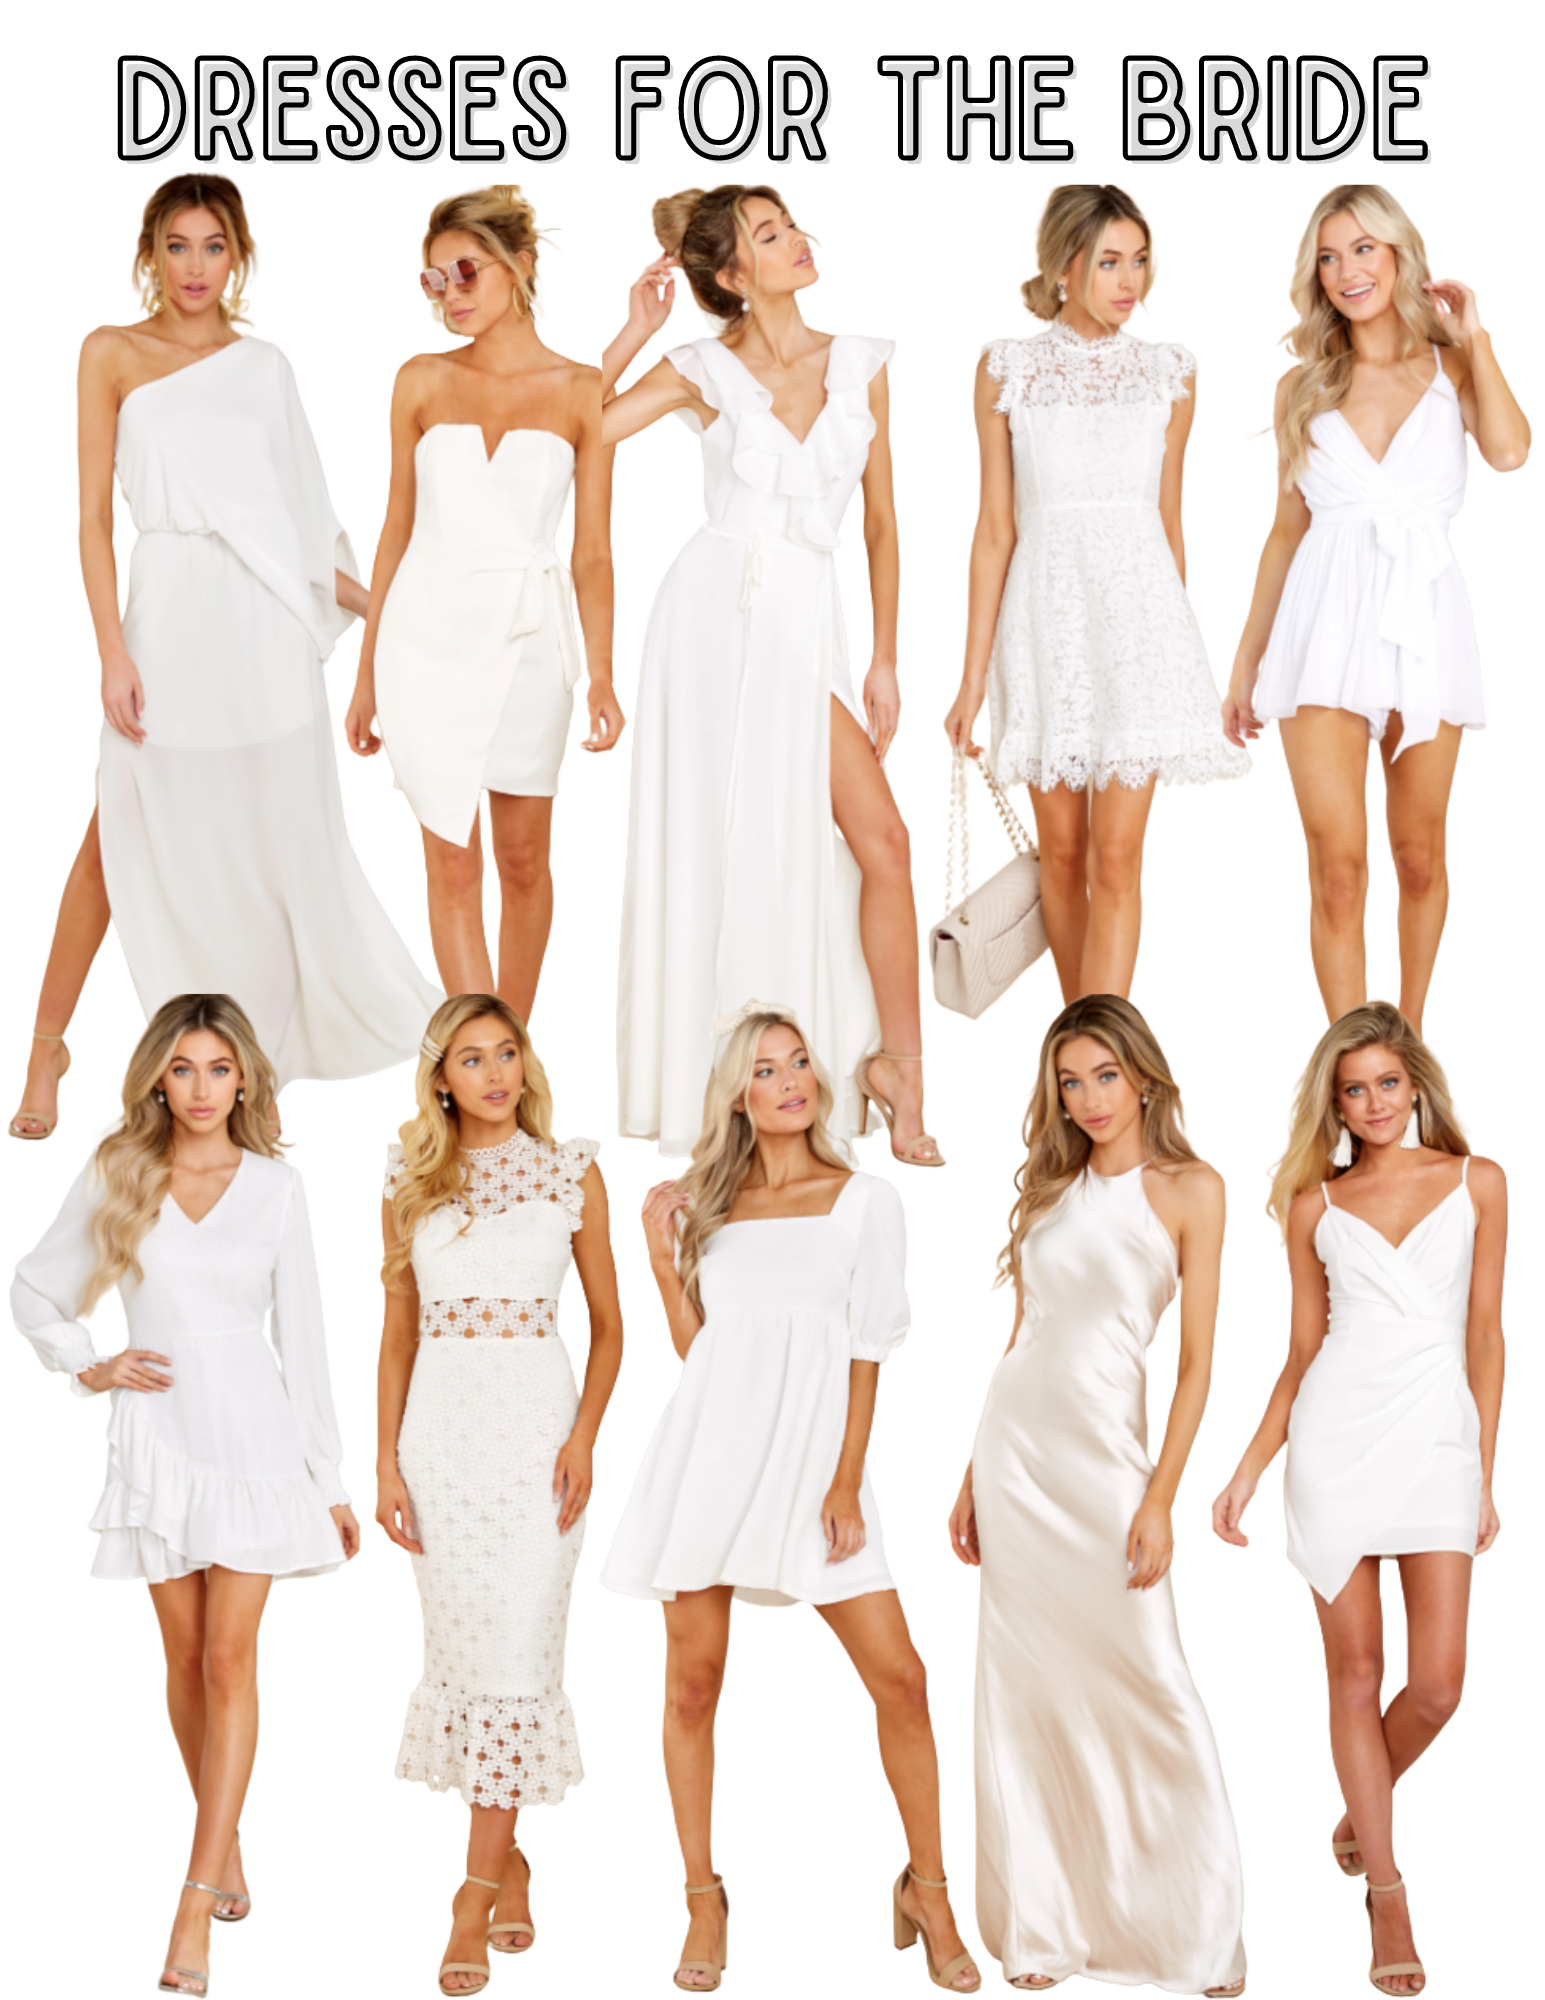 Dresses for the Bride